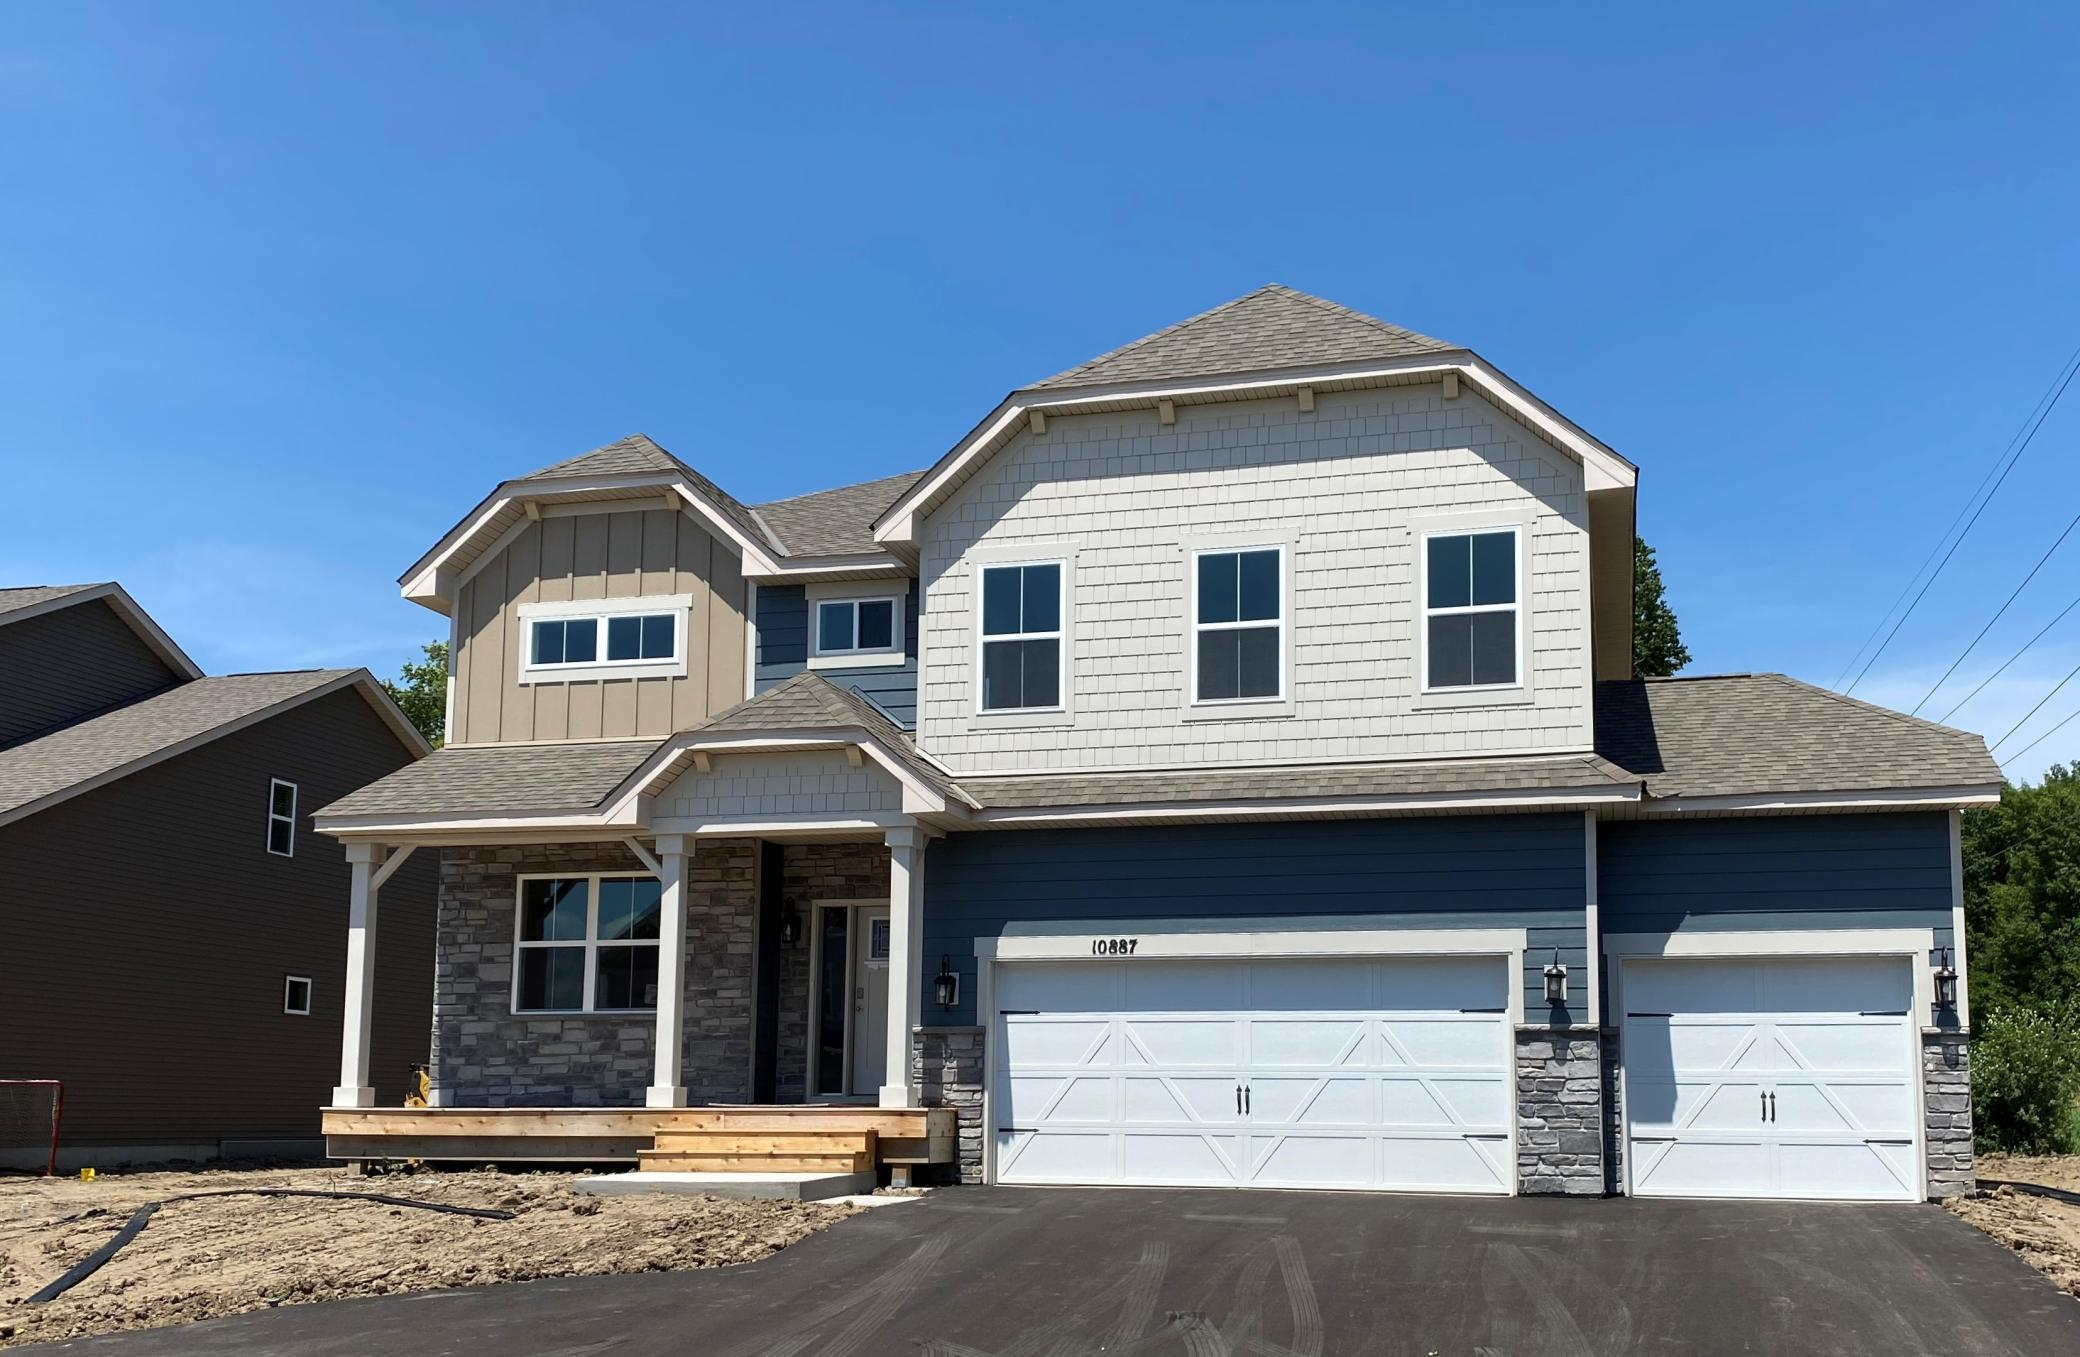 10887 Orchid N Property Photo - Maple Grove, MN real estate listing